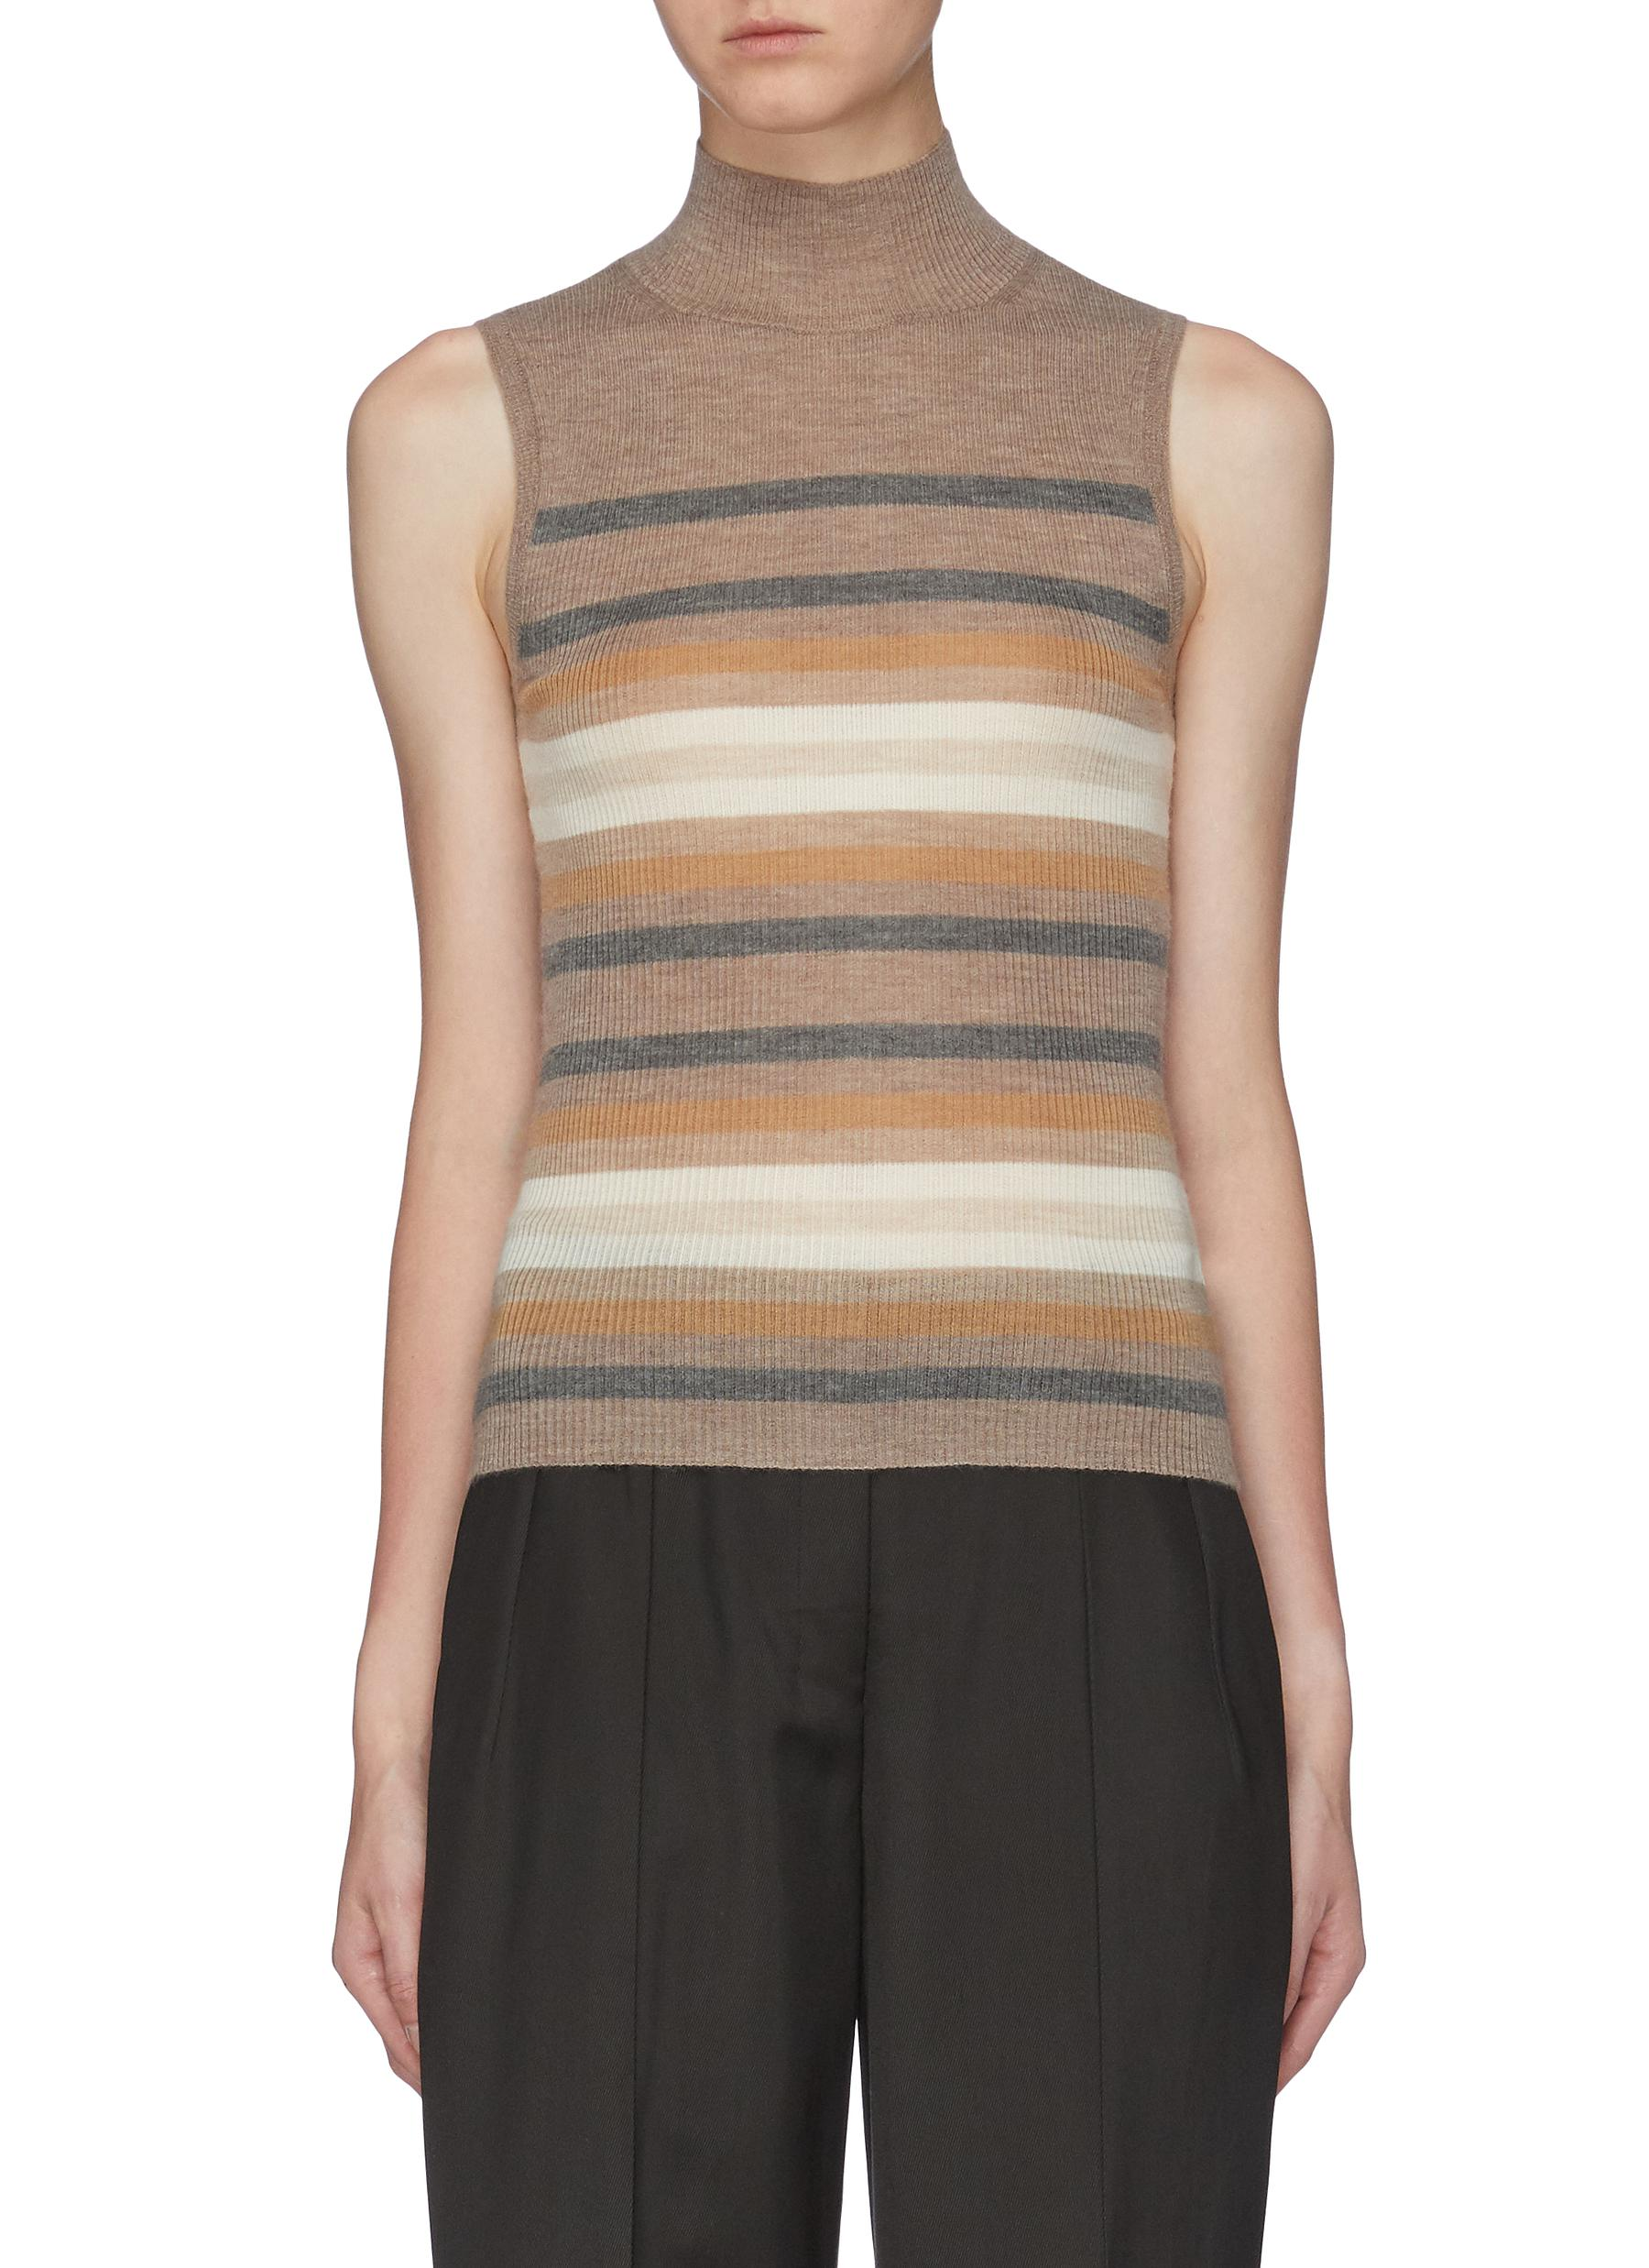 Stripe cashmere rib knit turtleneck top by Theory